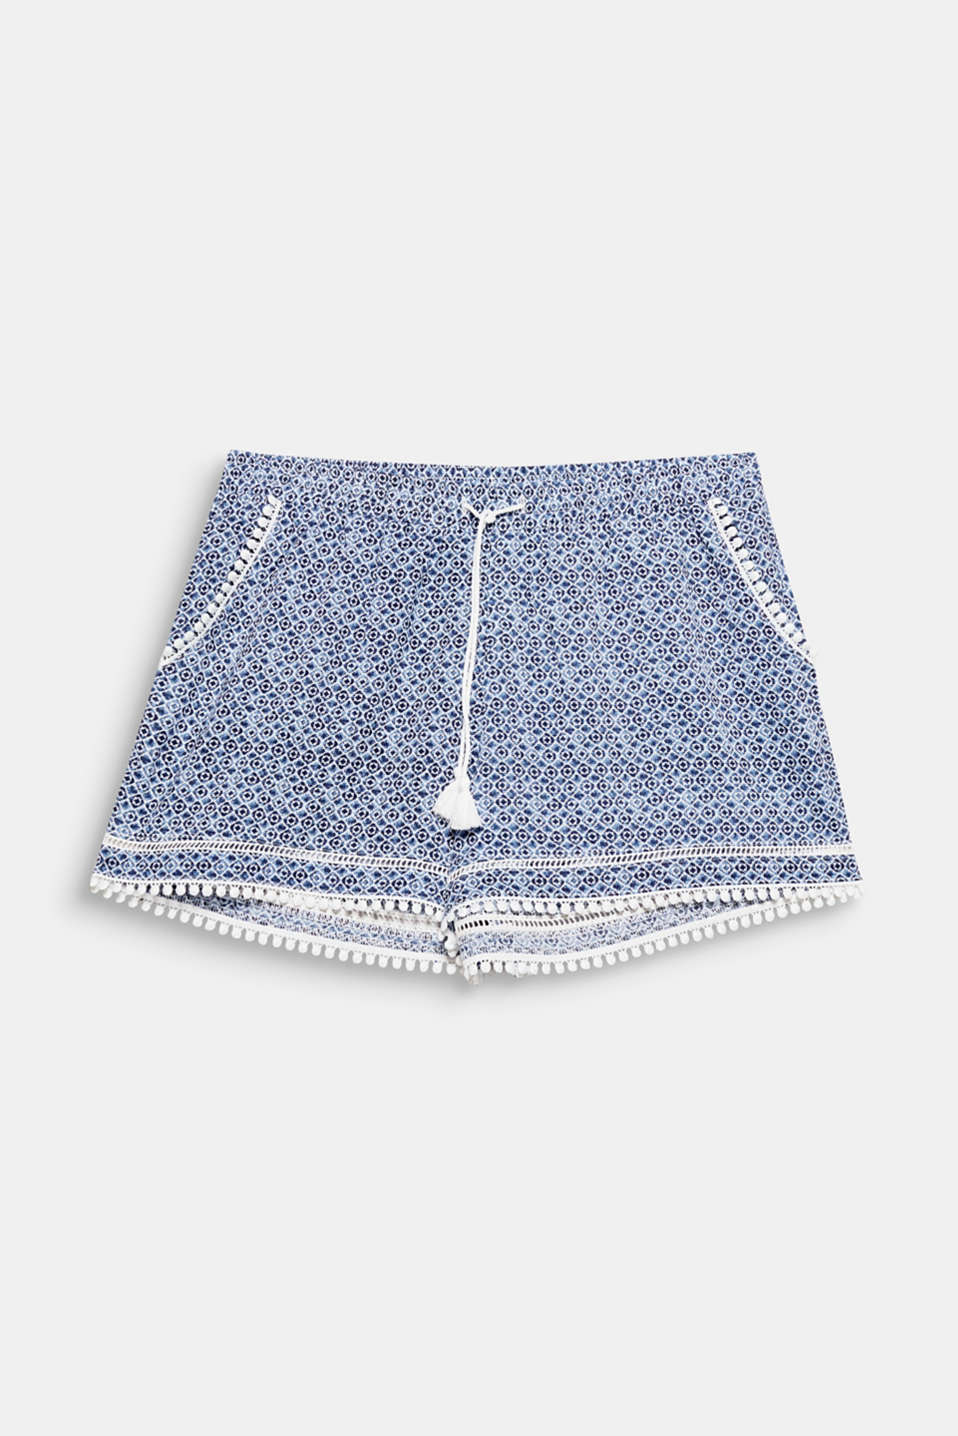 SAPPHIRE collection – these fabric shorts with a mini print complete matching swimwear or a simple basic top!